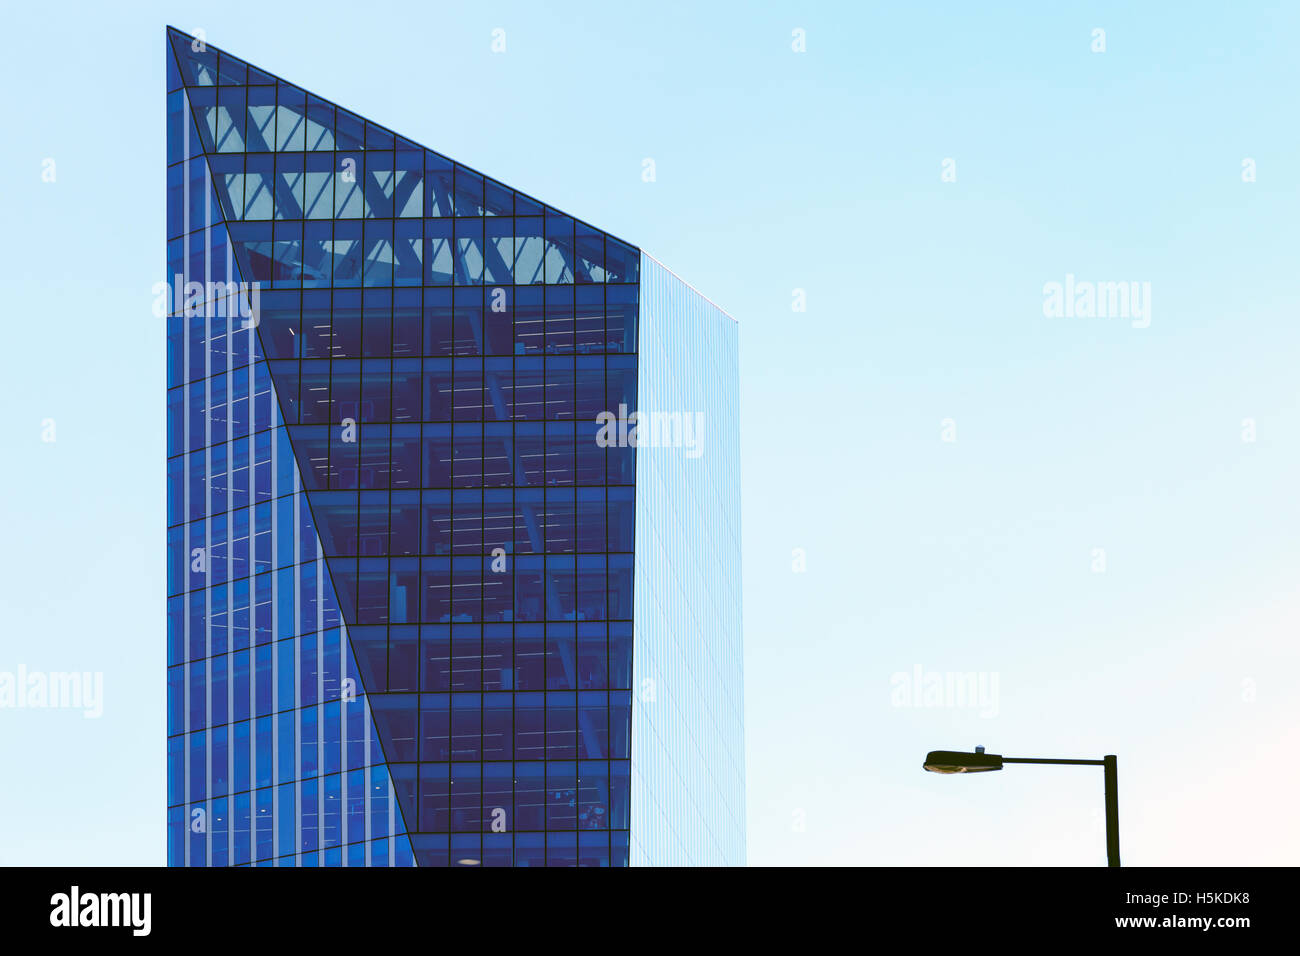 Modern office building (UBM headquarter) and a lamppost against a blue cloudless sky - Stock Image